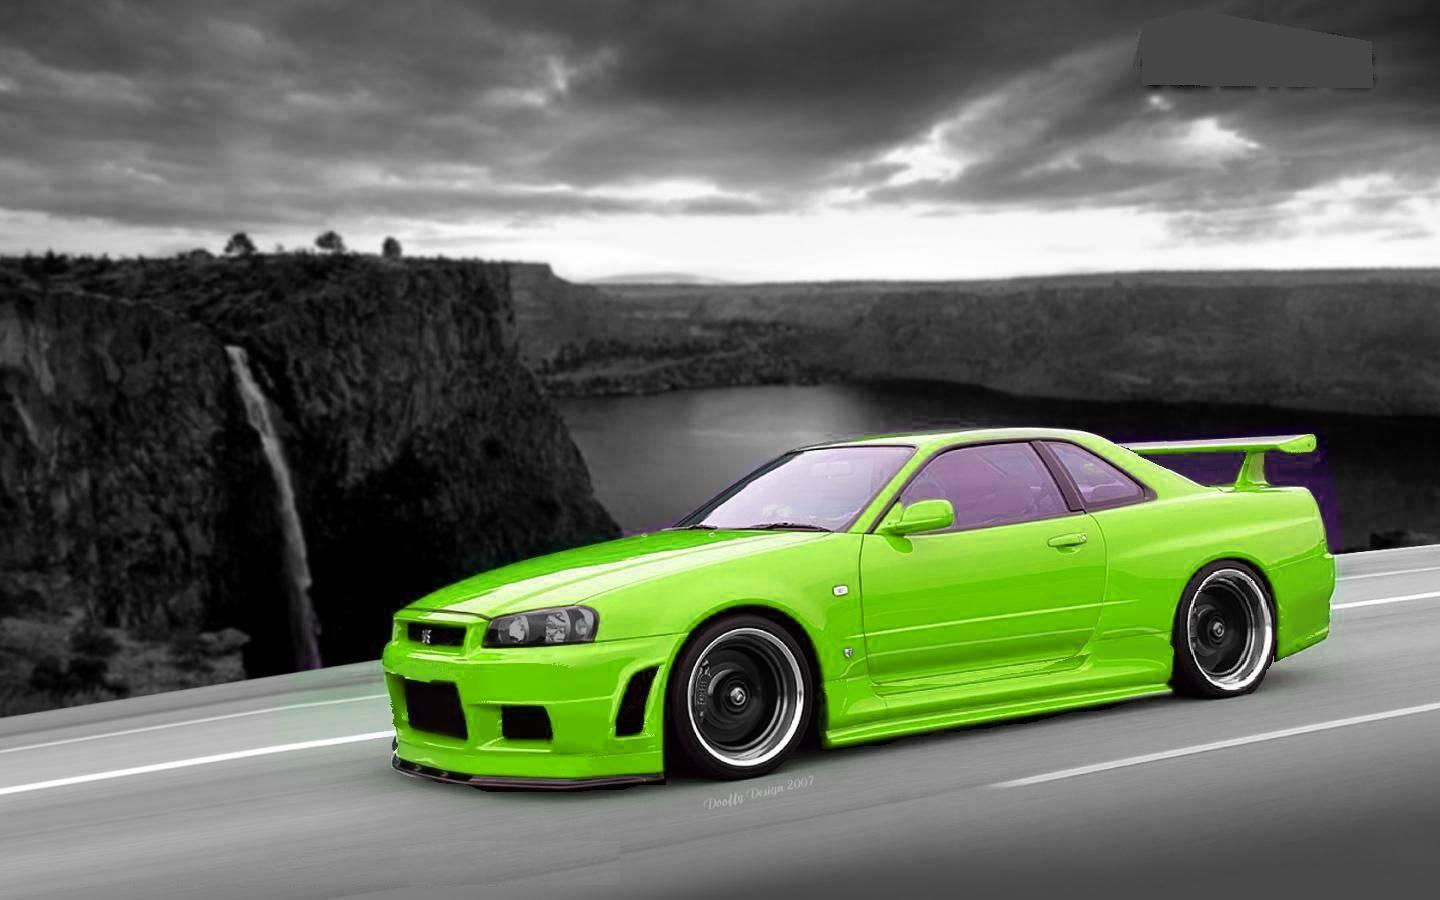 Nissan Skyline R34 Wallpapers - Wallpaper Cave